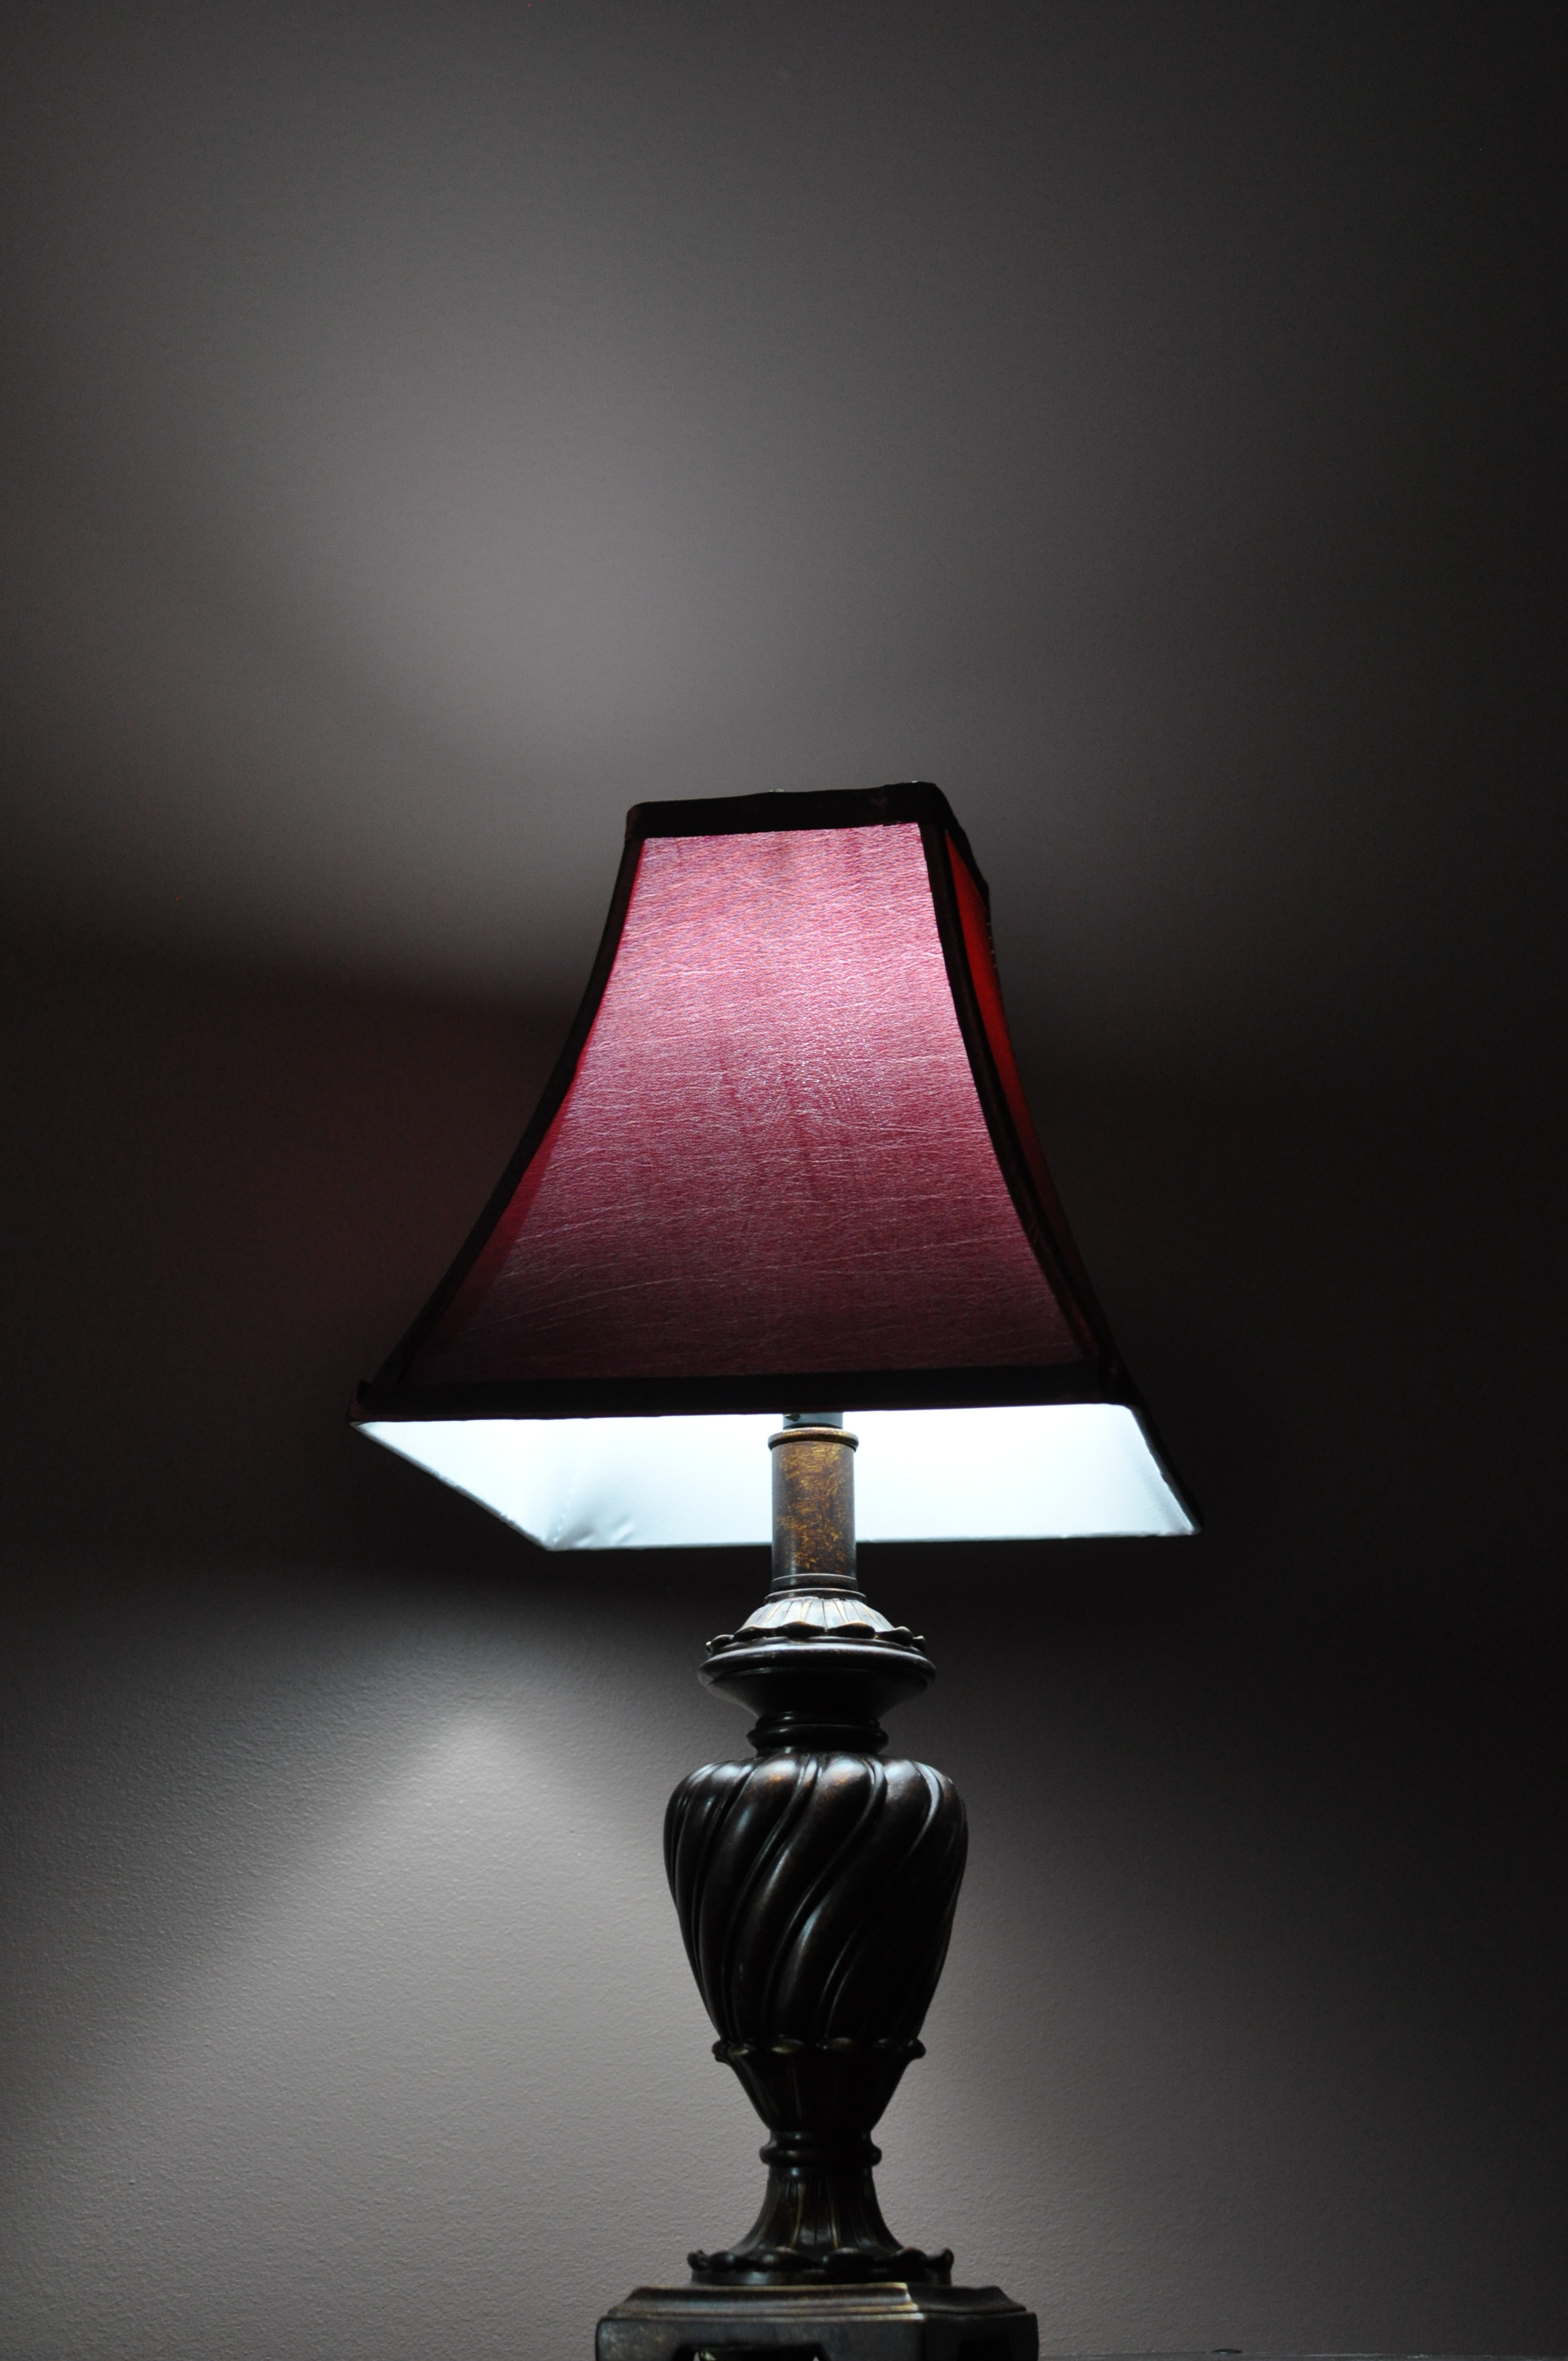 New Lamp Lights Room Baby Dickey Chicago